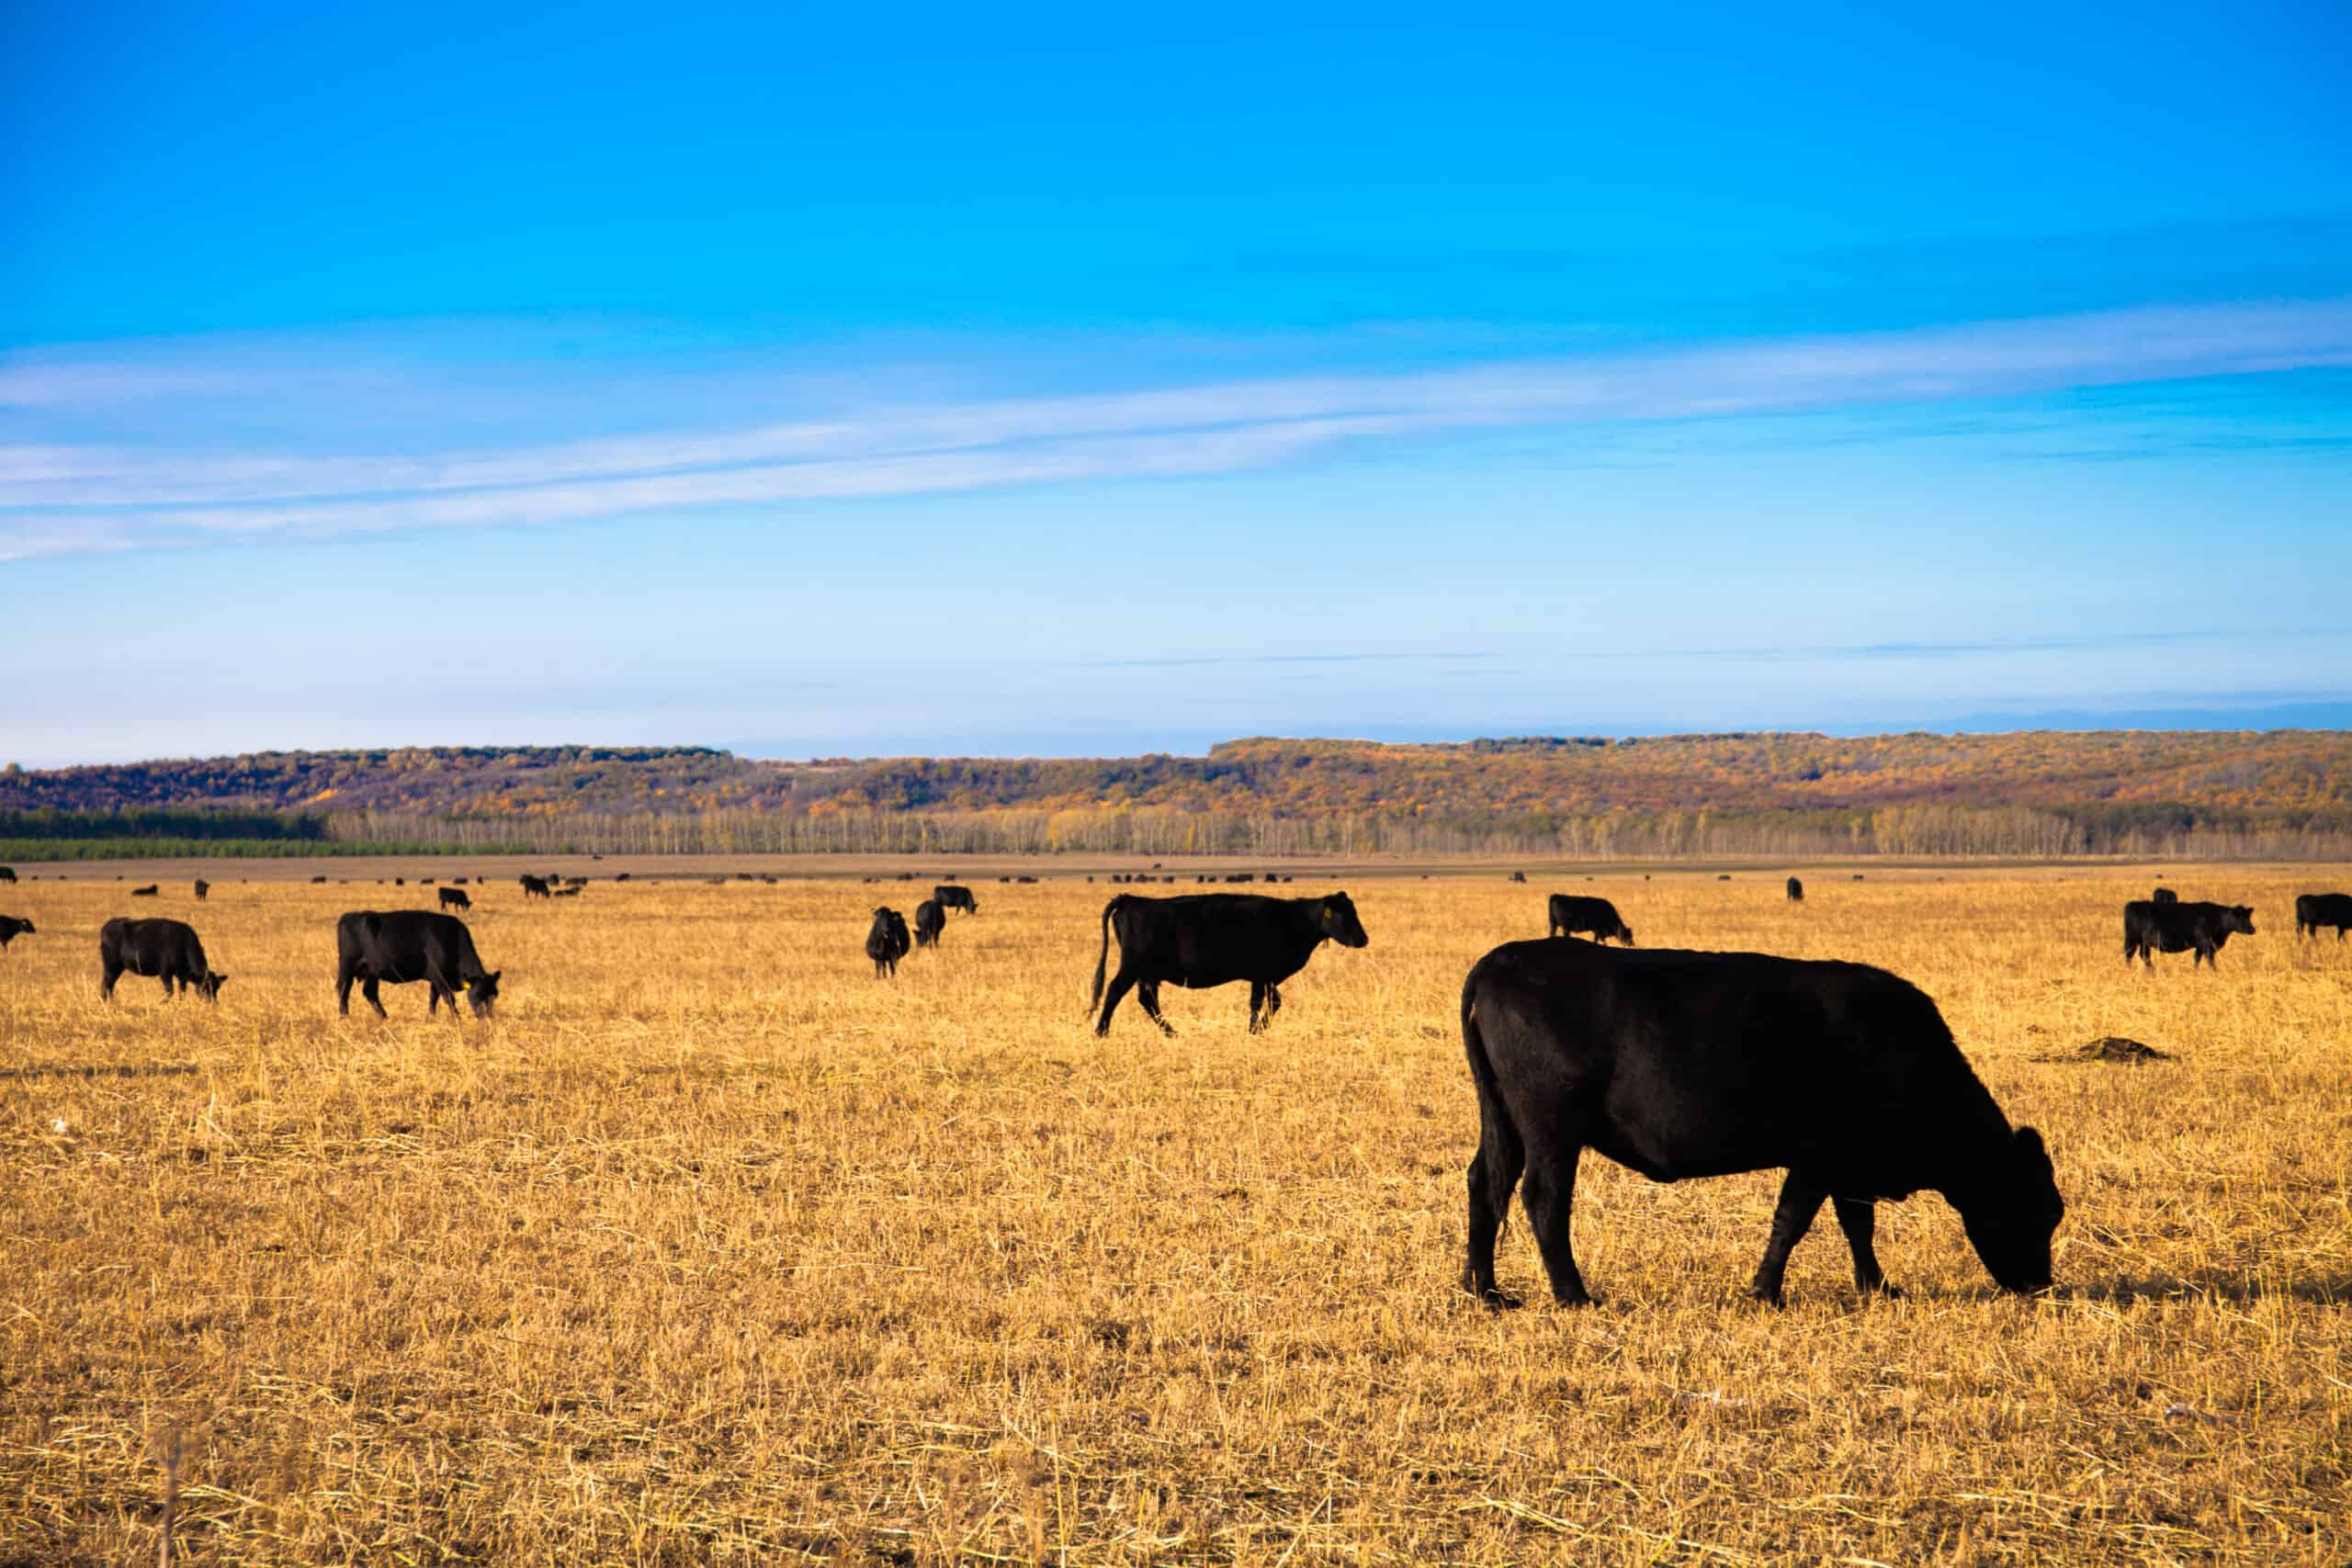 Black Angus Bulls graze on the meadow